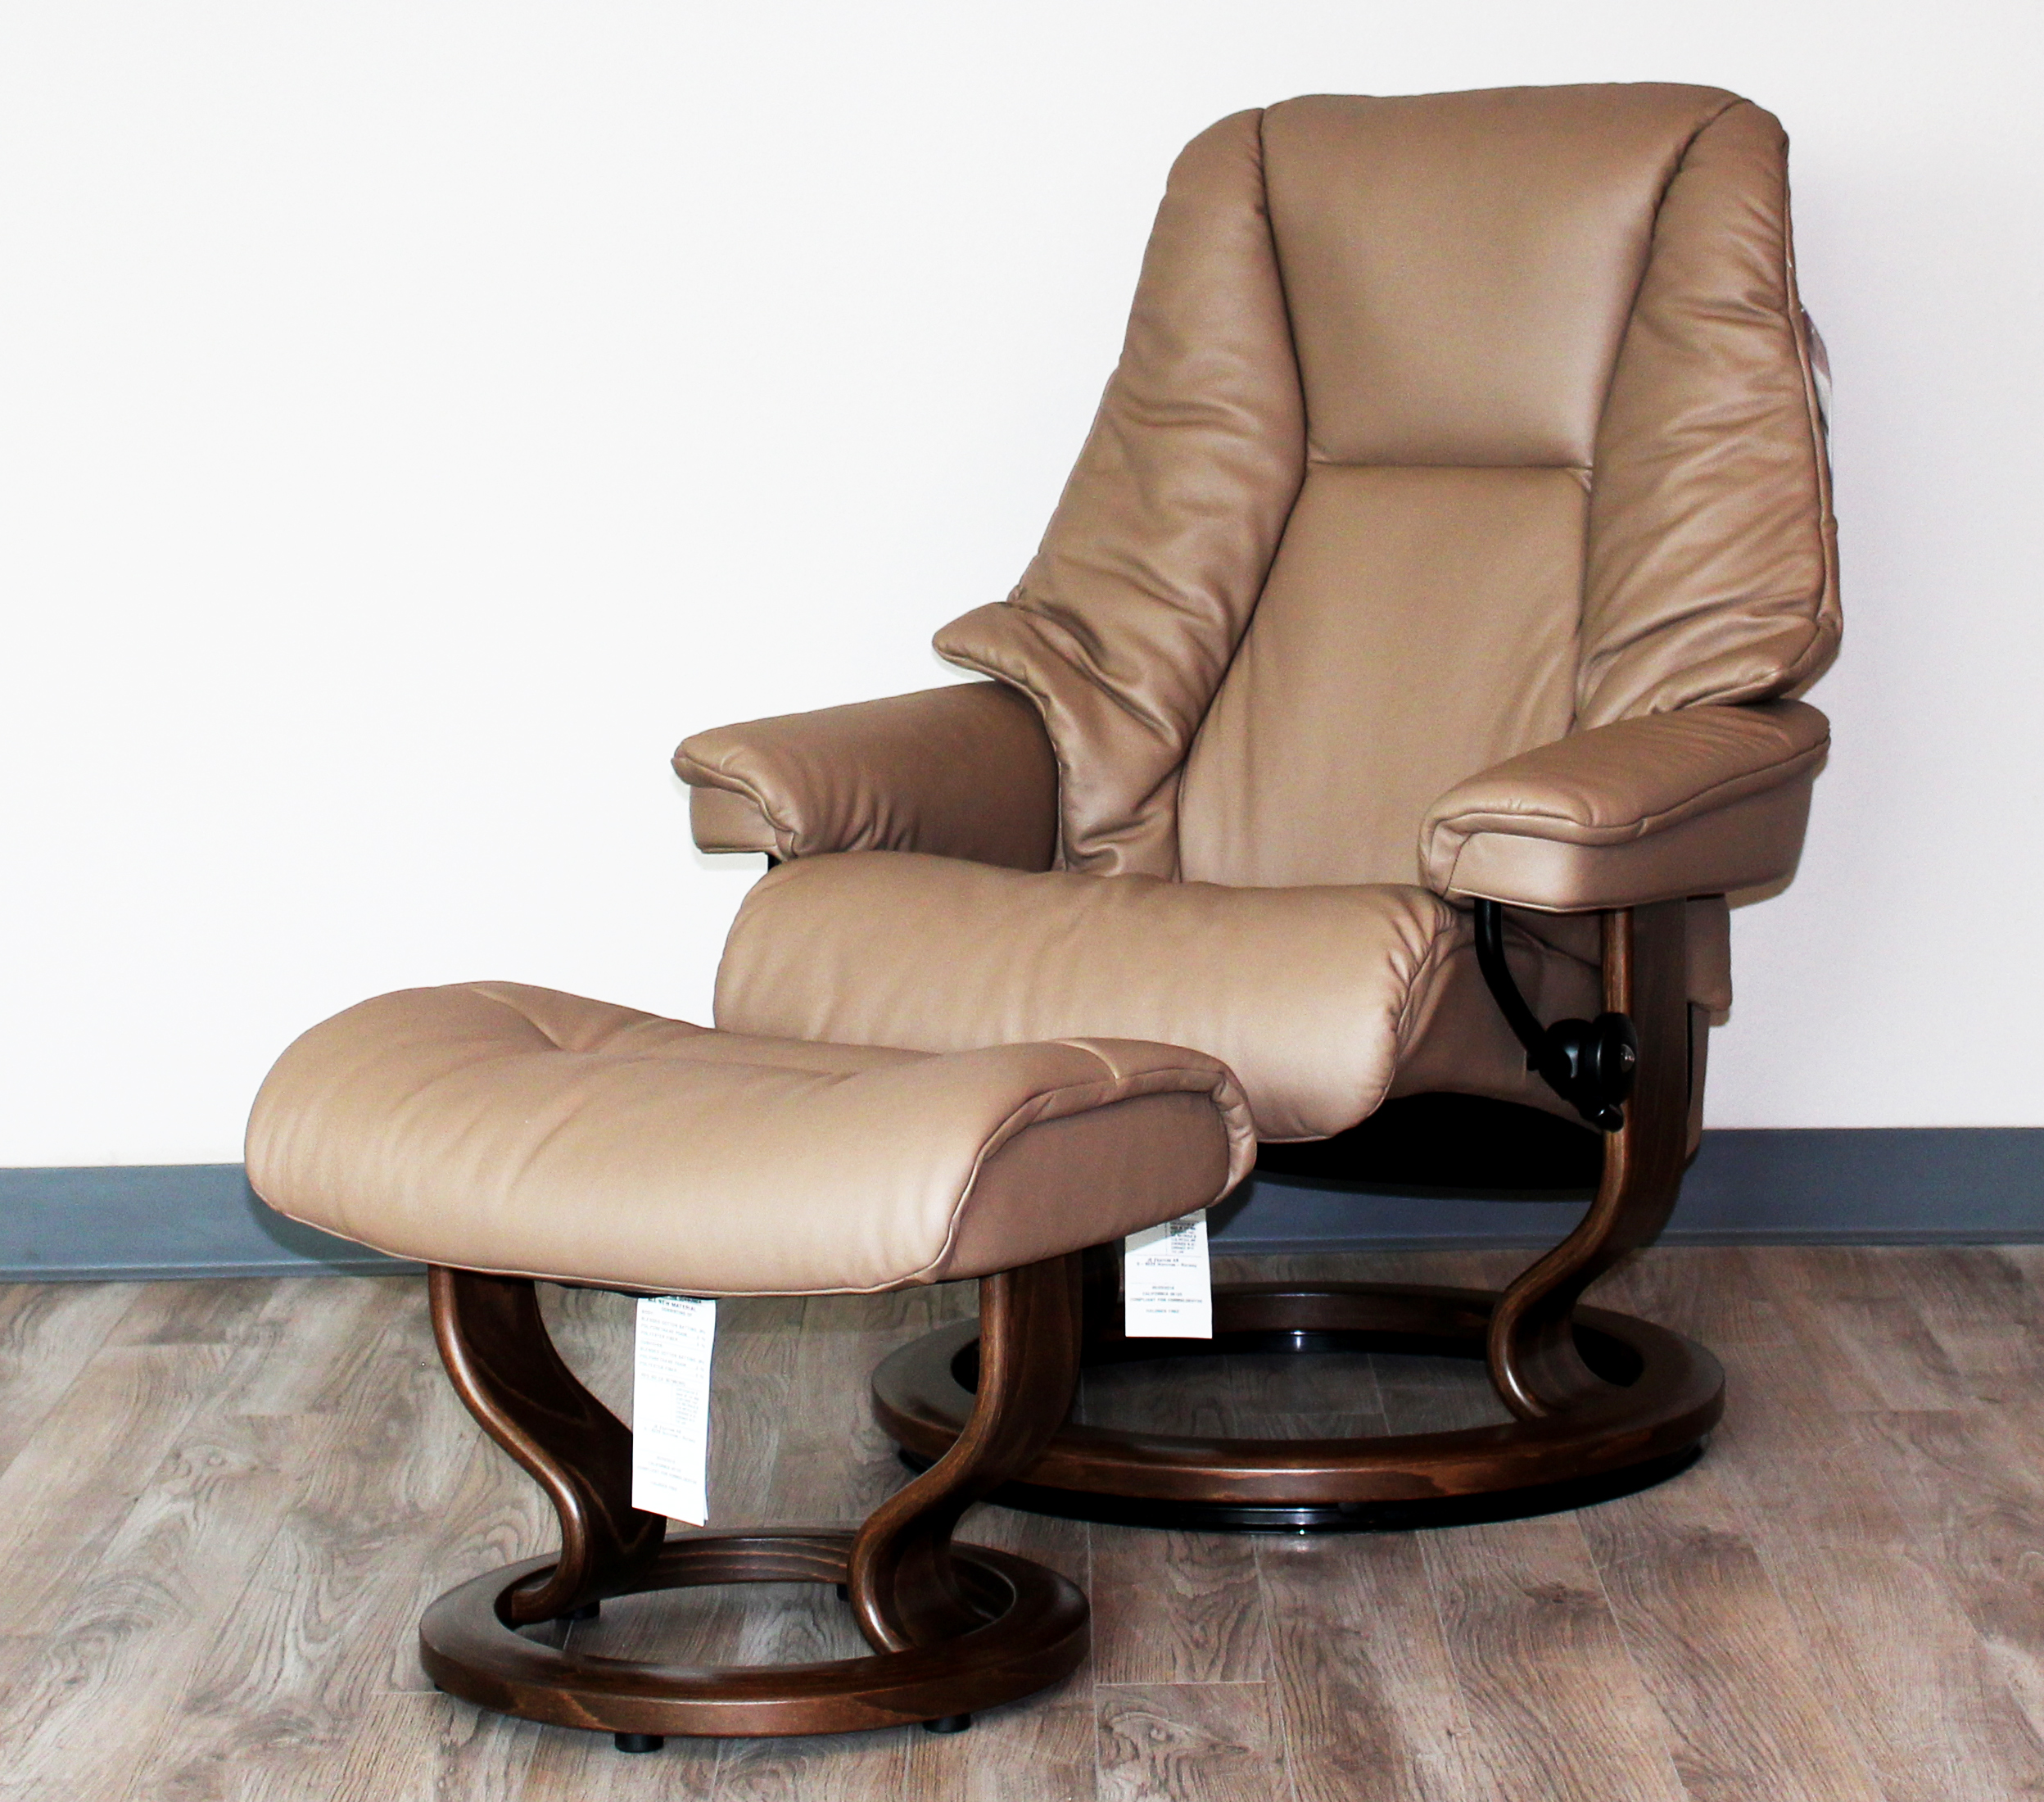 Stressless Nordic Legcomfort Stressless Live Medium Recliner Classic Wood Base Chair And Ottoman By Ekornes